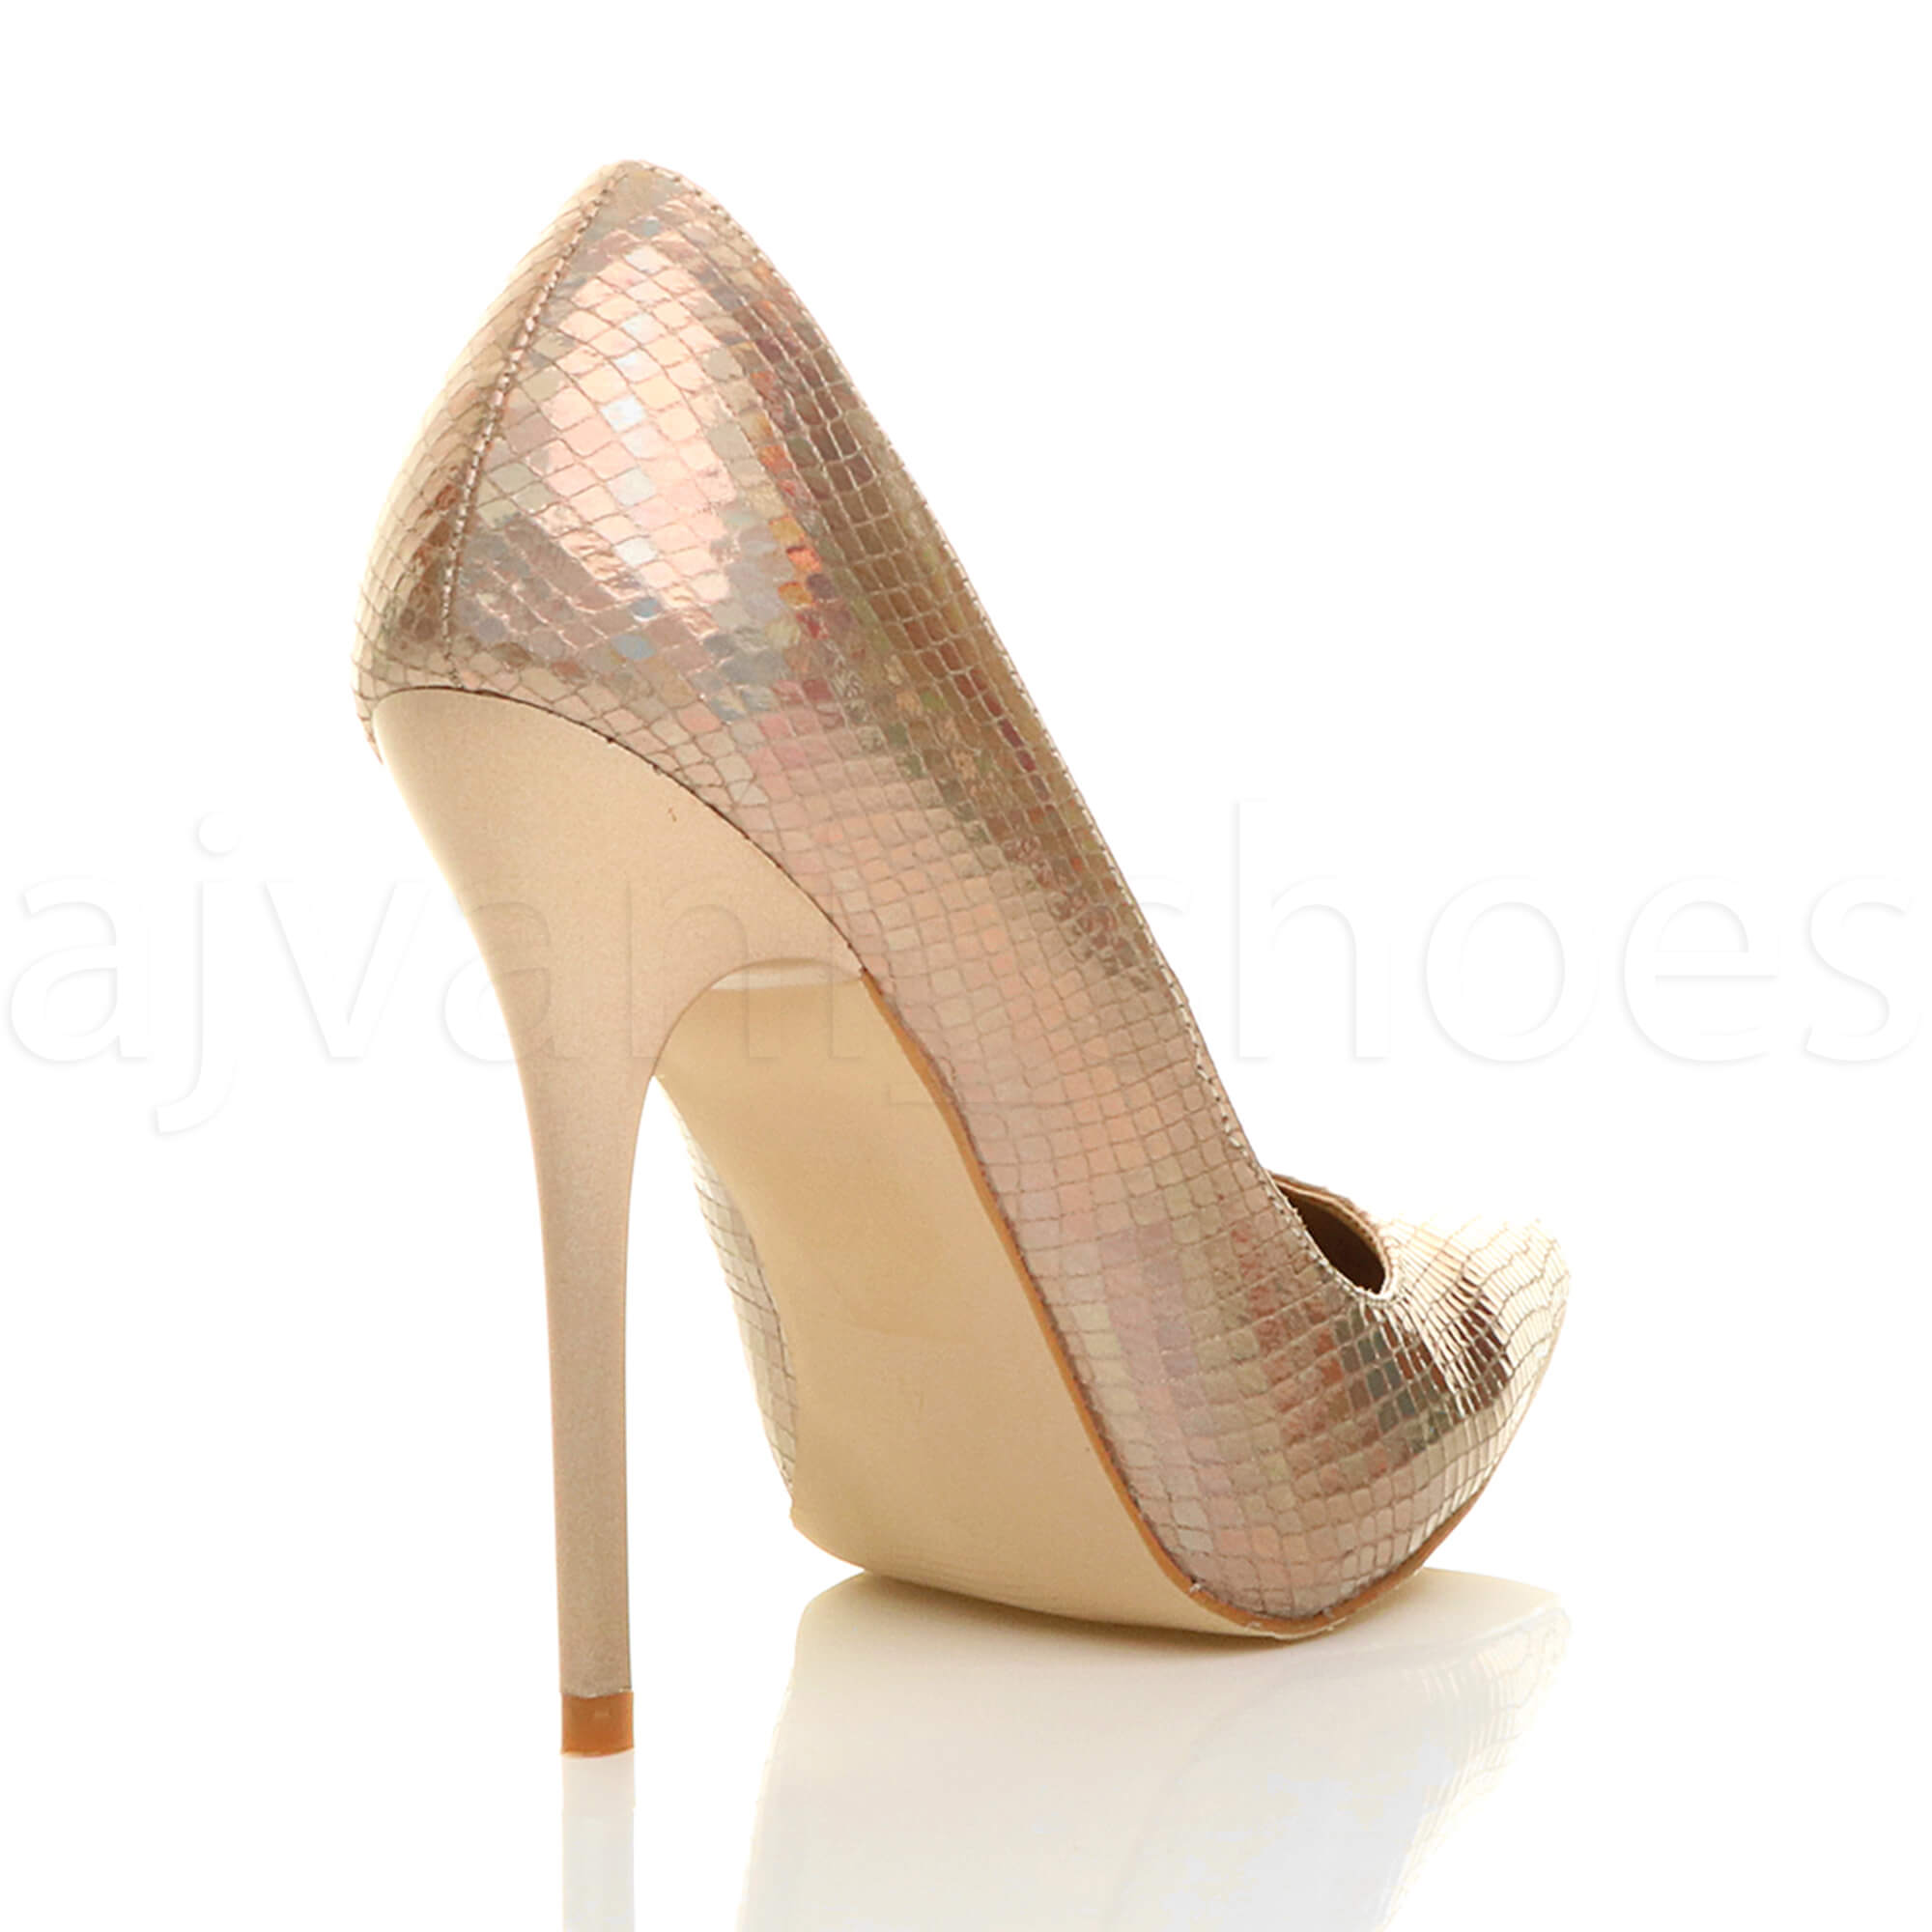 WOMENS-LADIES-HIGH-HEEL-POINTED-CONTRAST-COURT-SMART-PARTY-WORK-SHOES-PUMPS-SIZE thumbnail 60